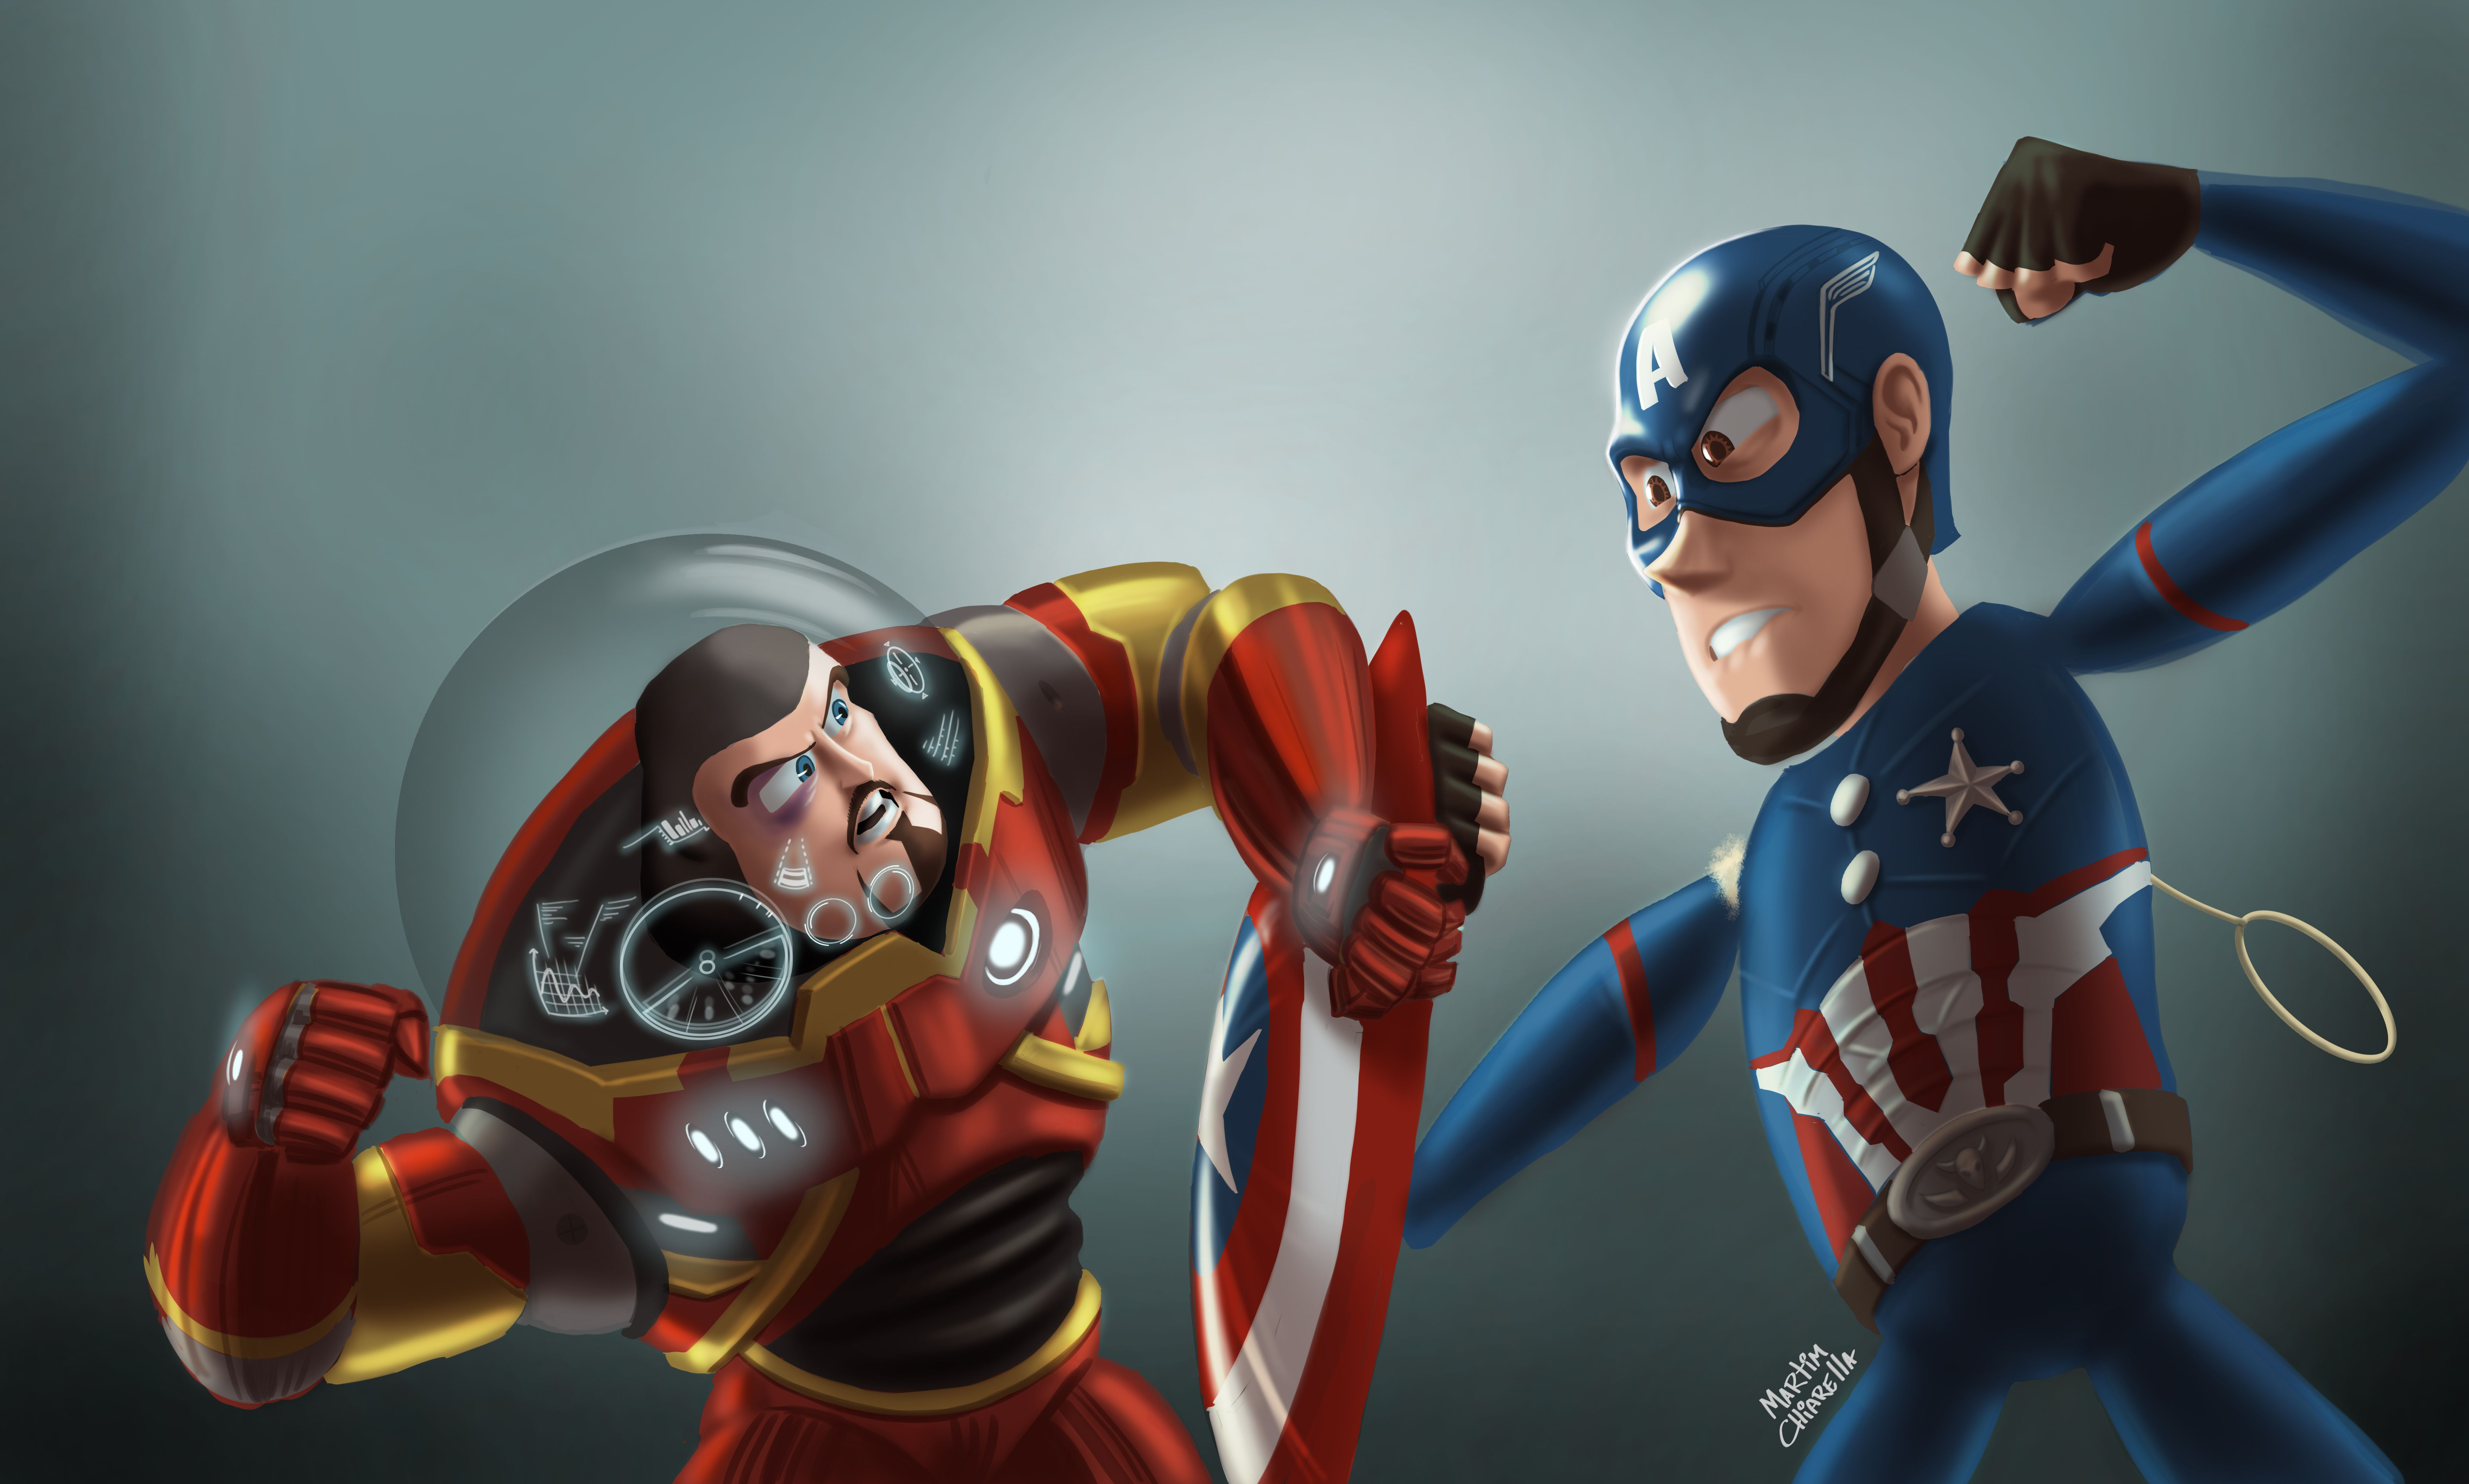 Buzz Lightyear As Iron Man And Sheriff Woody As Captain America Hd